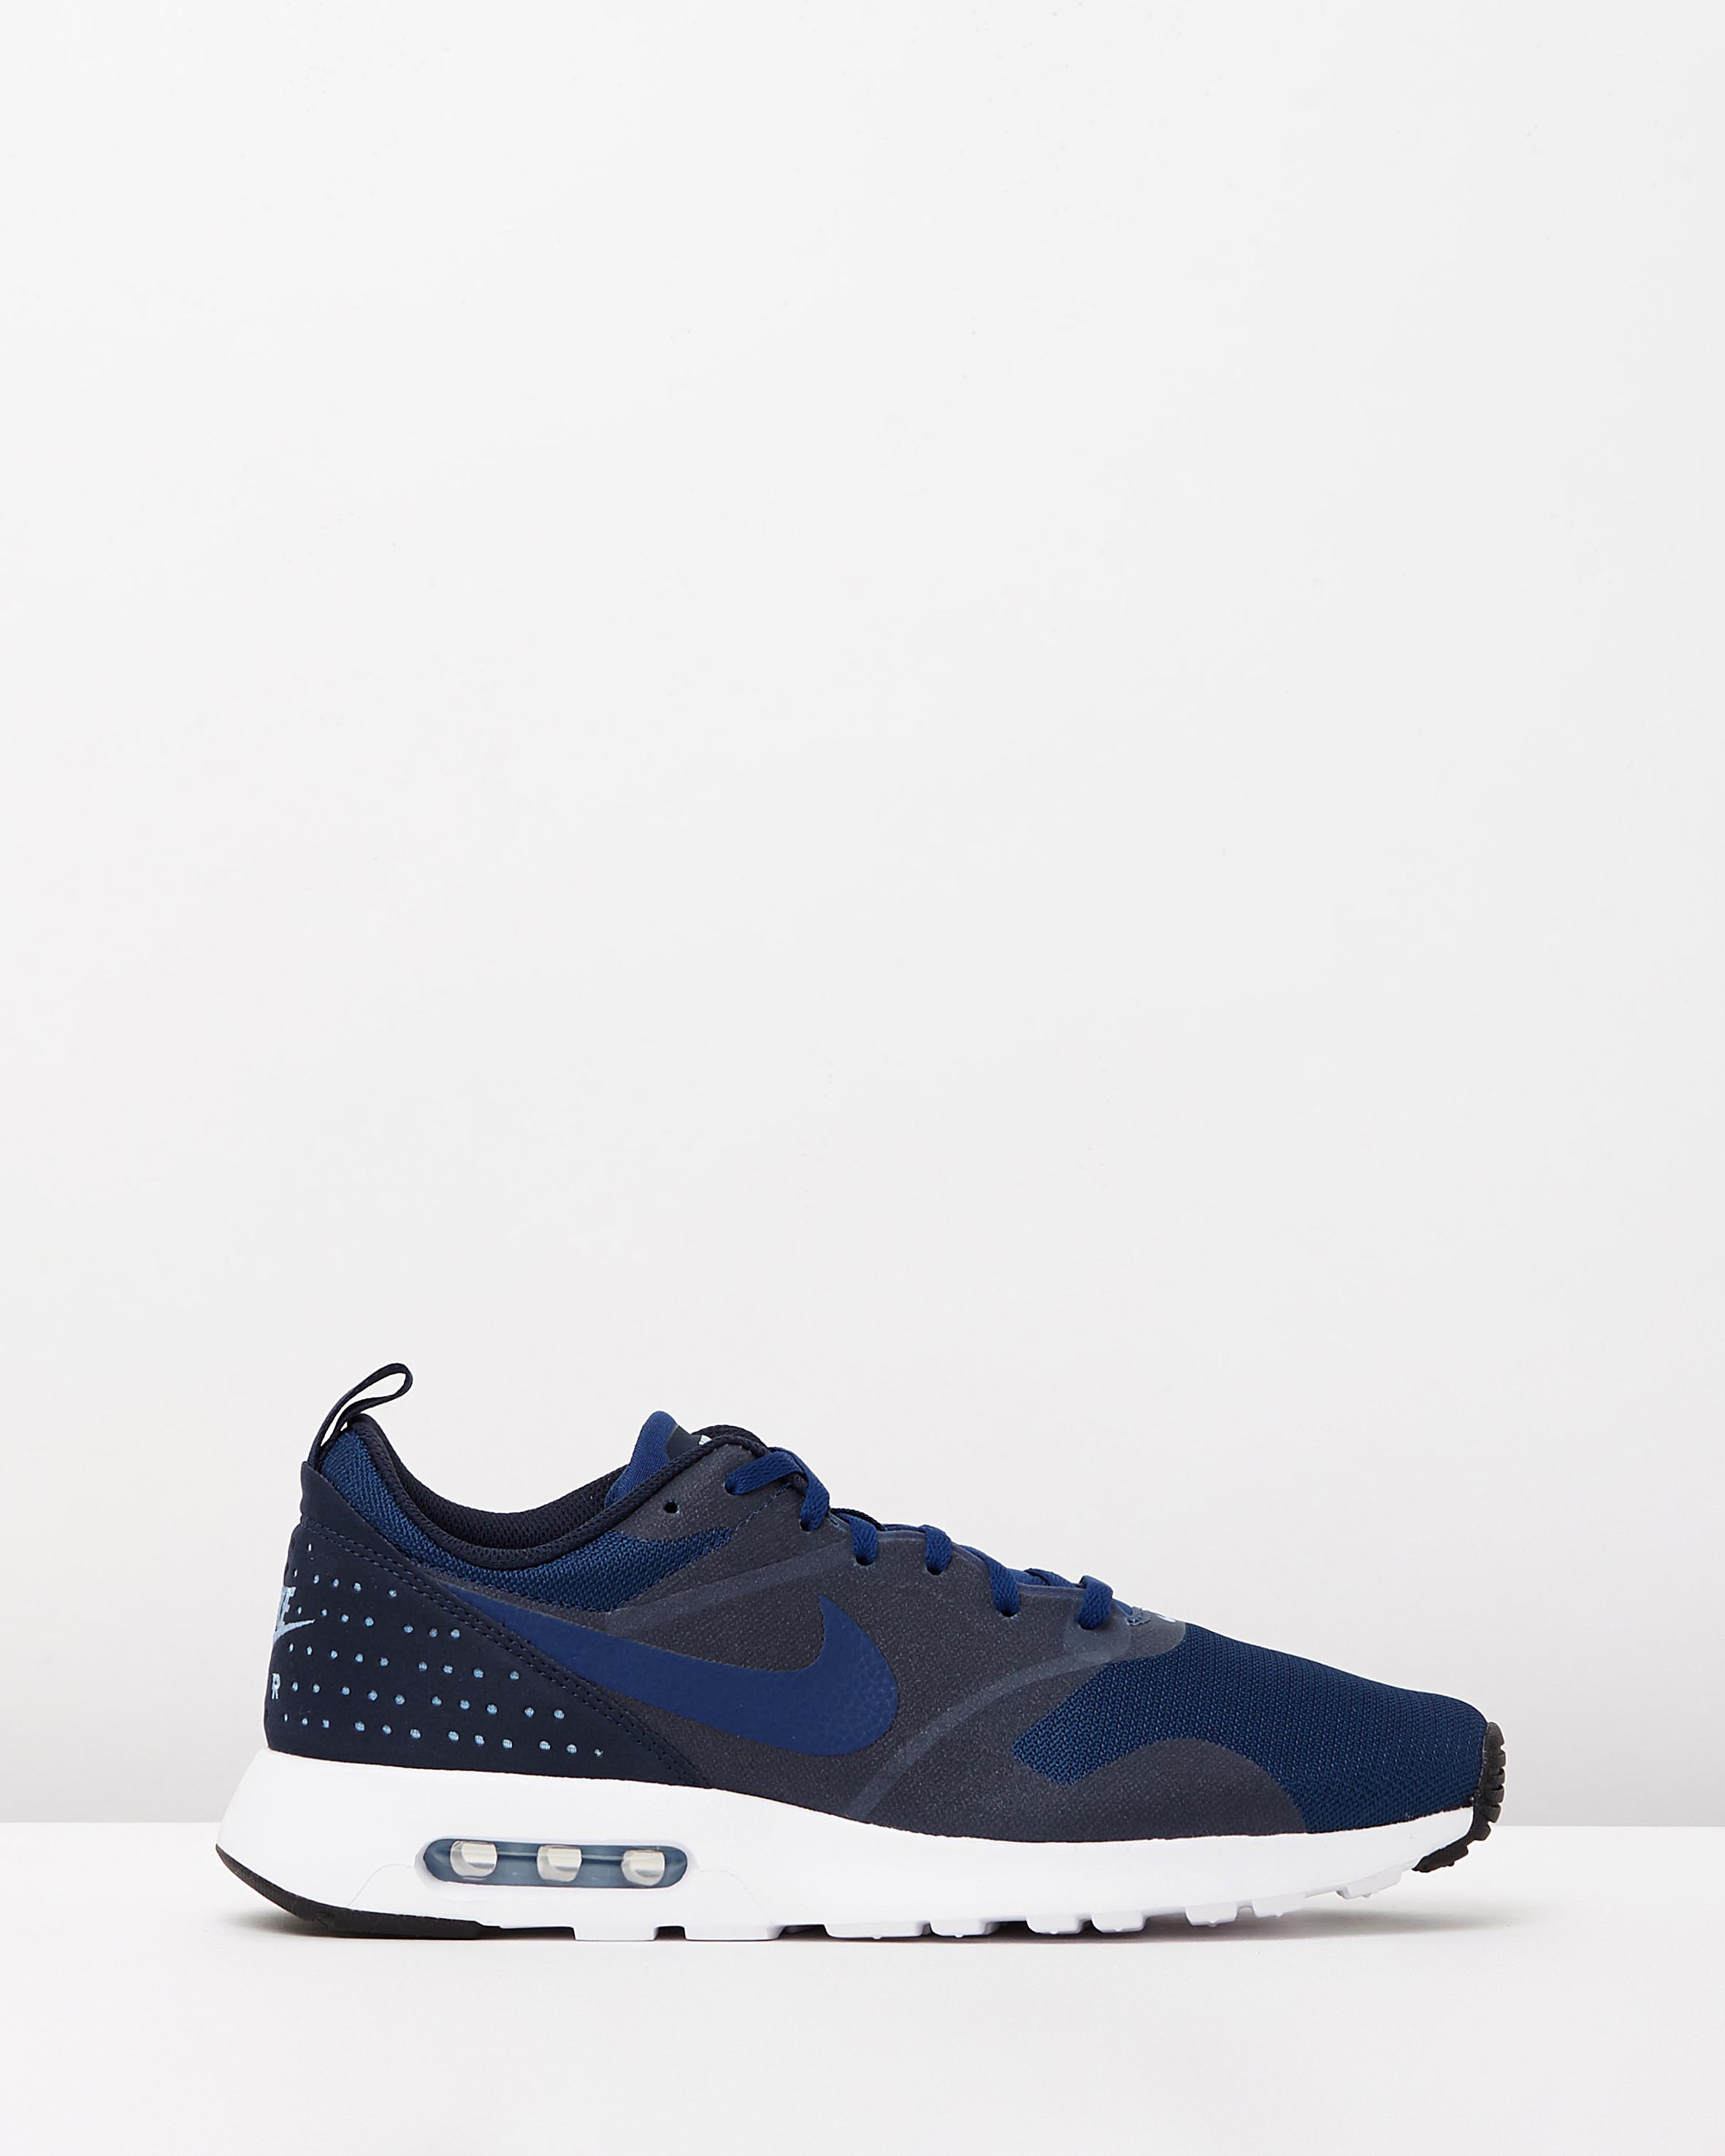 nike men s air max tavas coastal blue obsidian white. Black Bedroom Furniture Sets. Home Design Ideas